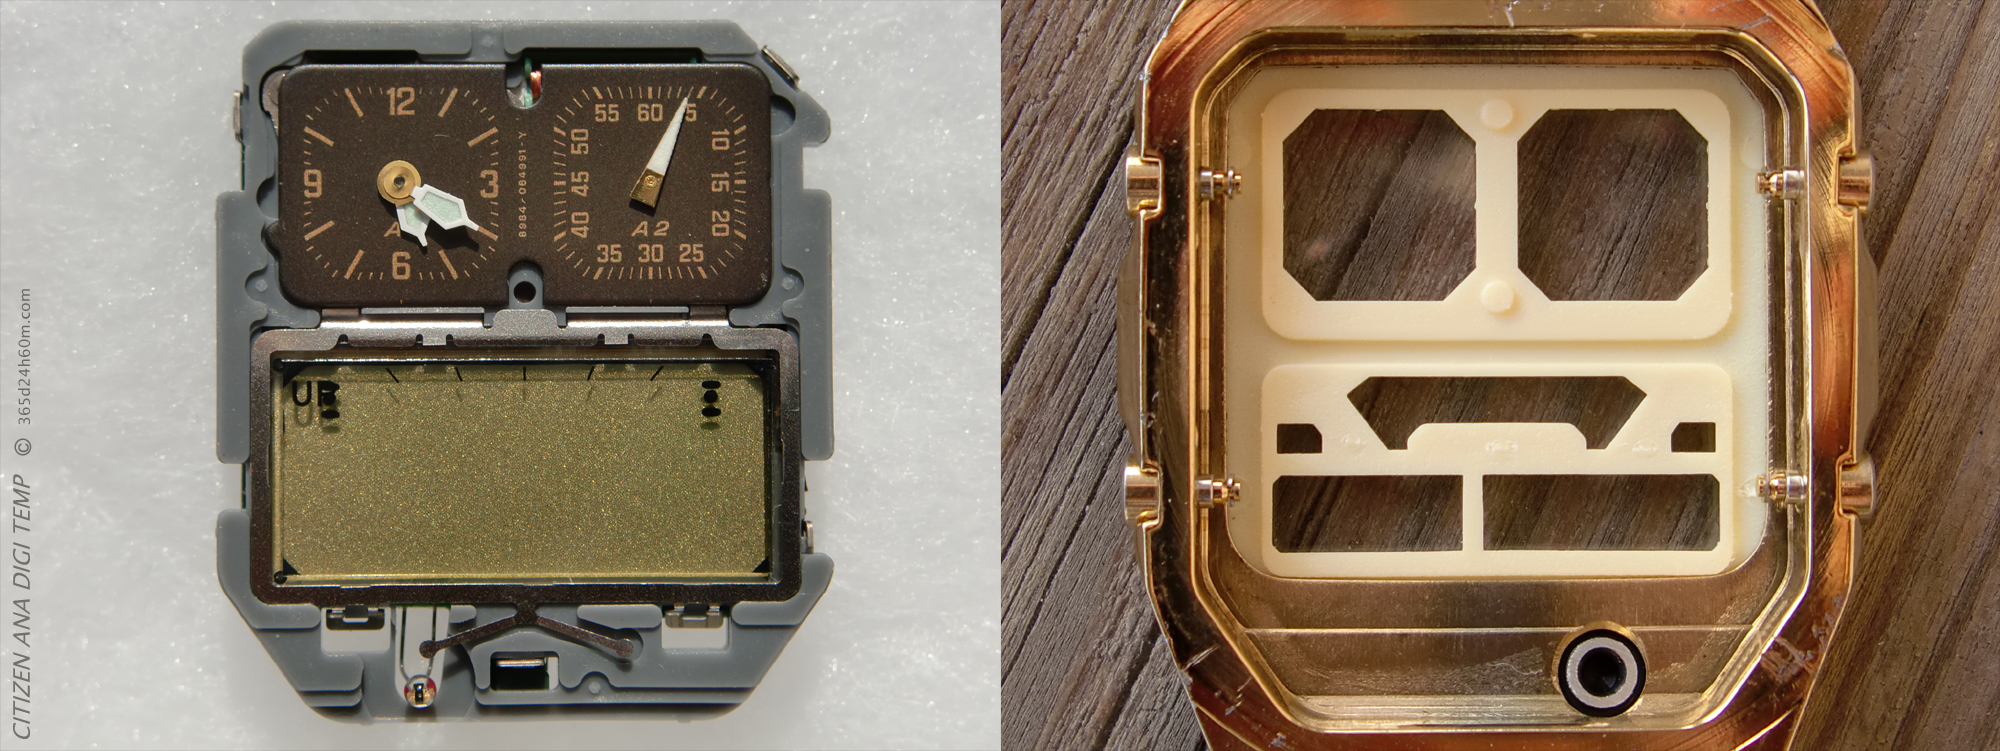 "Click to enlarge...Mechanism of a watch with a visible sensor and the watch casing with a visible place on the sensor. You can also see the ""aluminum cover"" placed on the casing using a rubber gasket !"